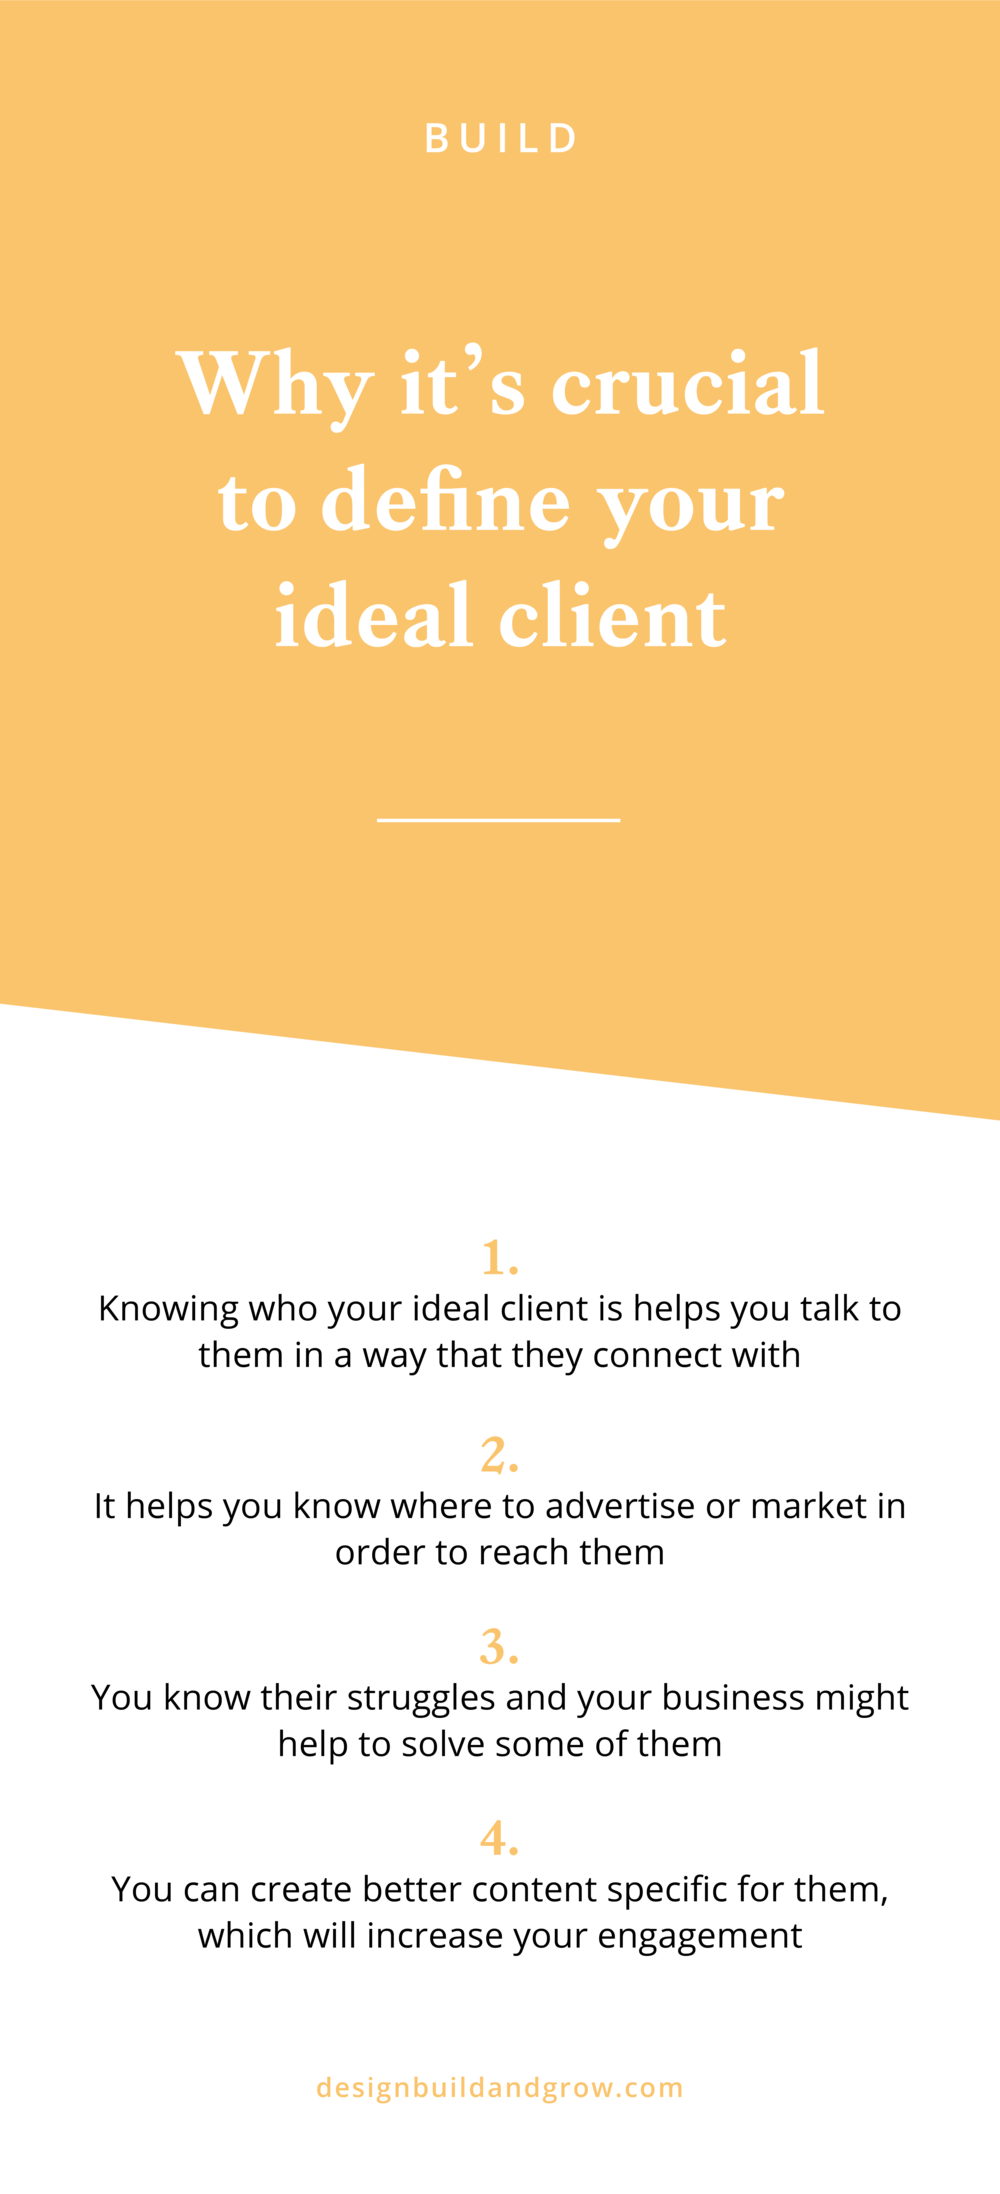 Why it's so important to define your ideal client